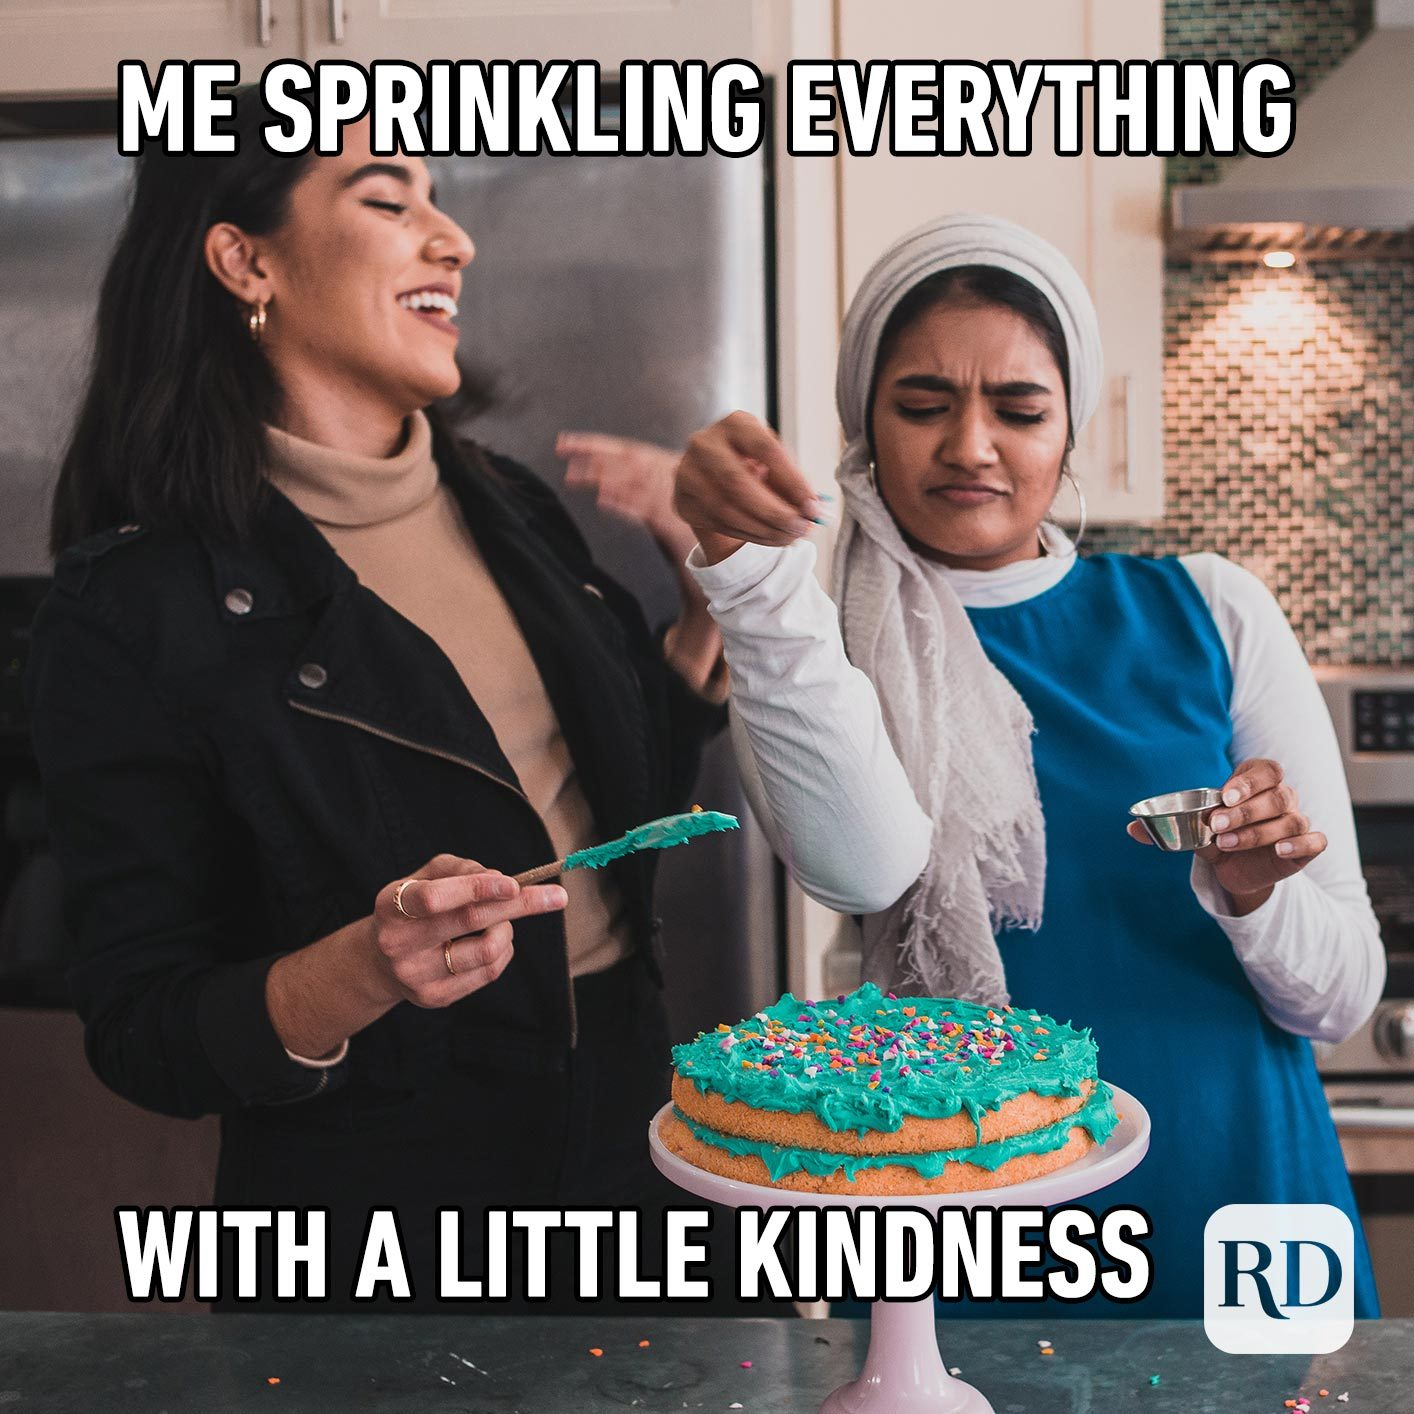 Two women making a cake, dusting it with sprinkles. Meme text: Me sprinkling everything with a little kindness